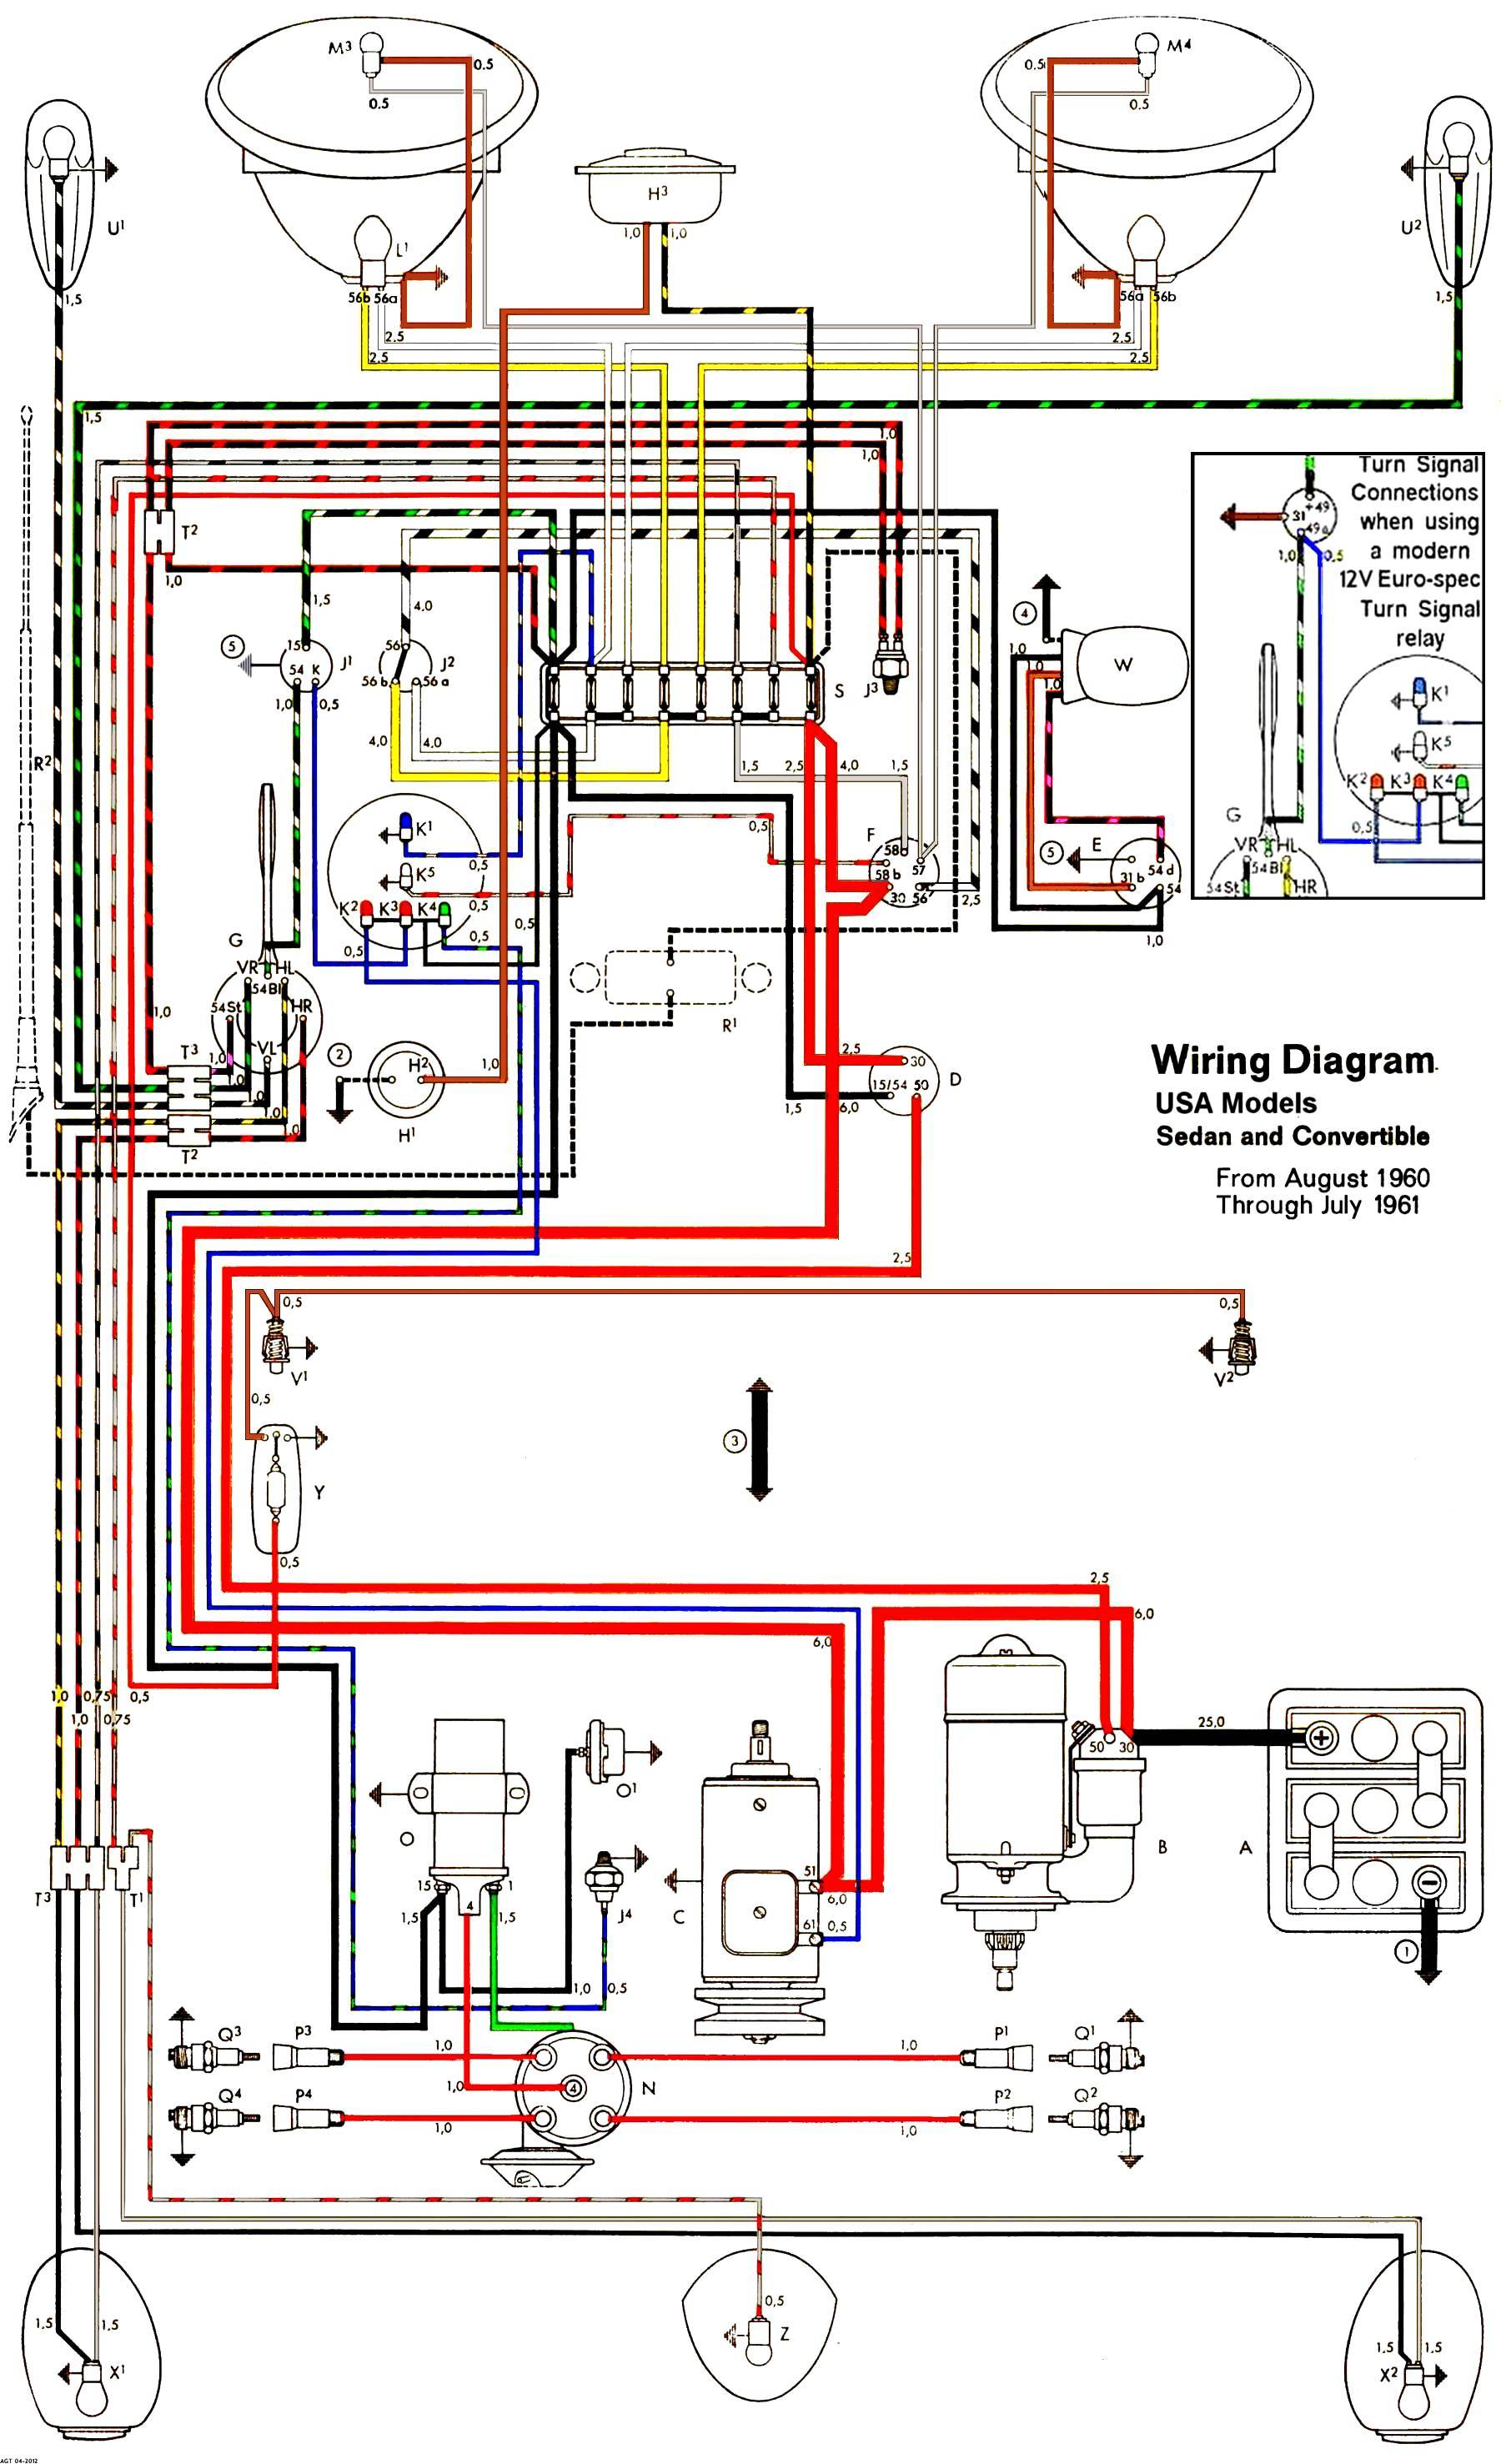 ford mustang wiring diagram likewise vw beetle wiring diagram on rh metroagua co